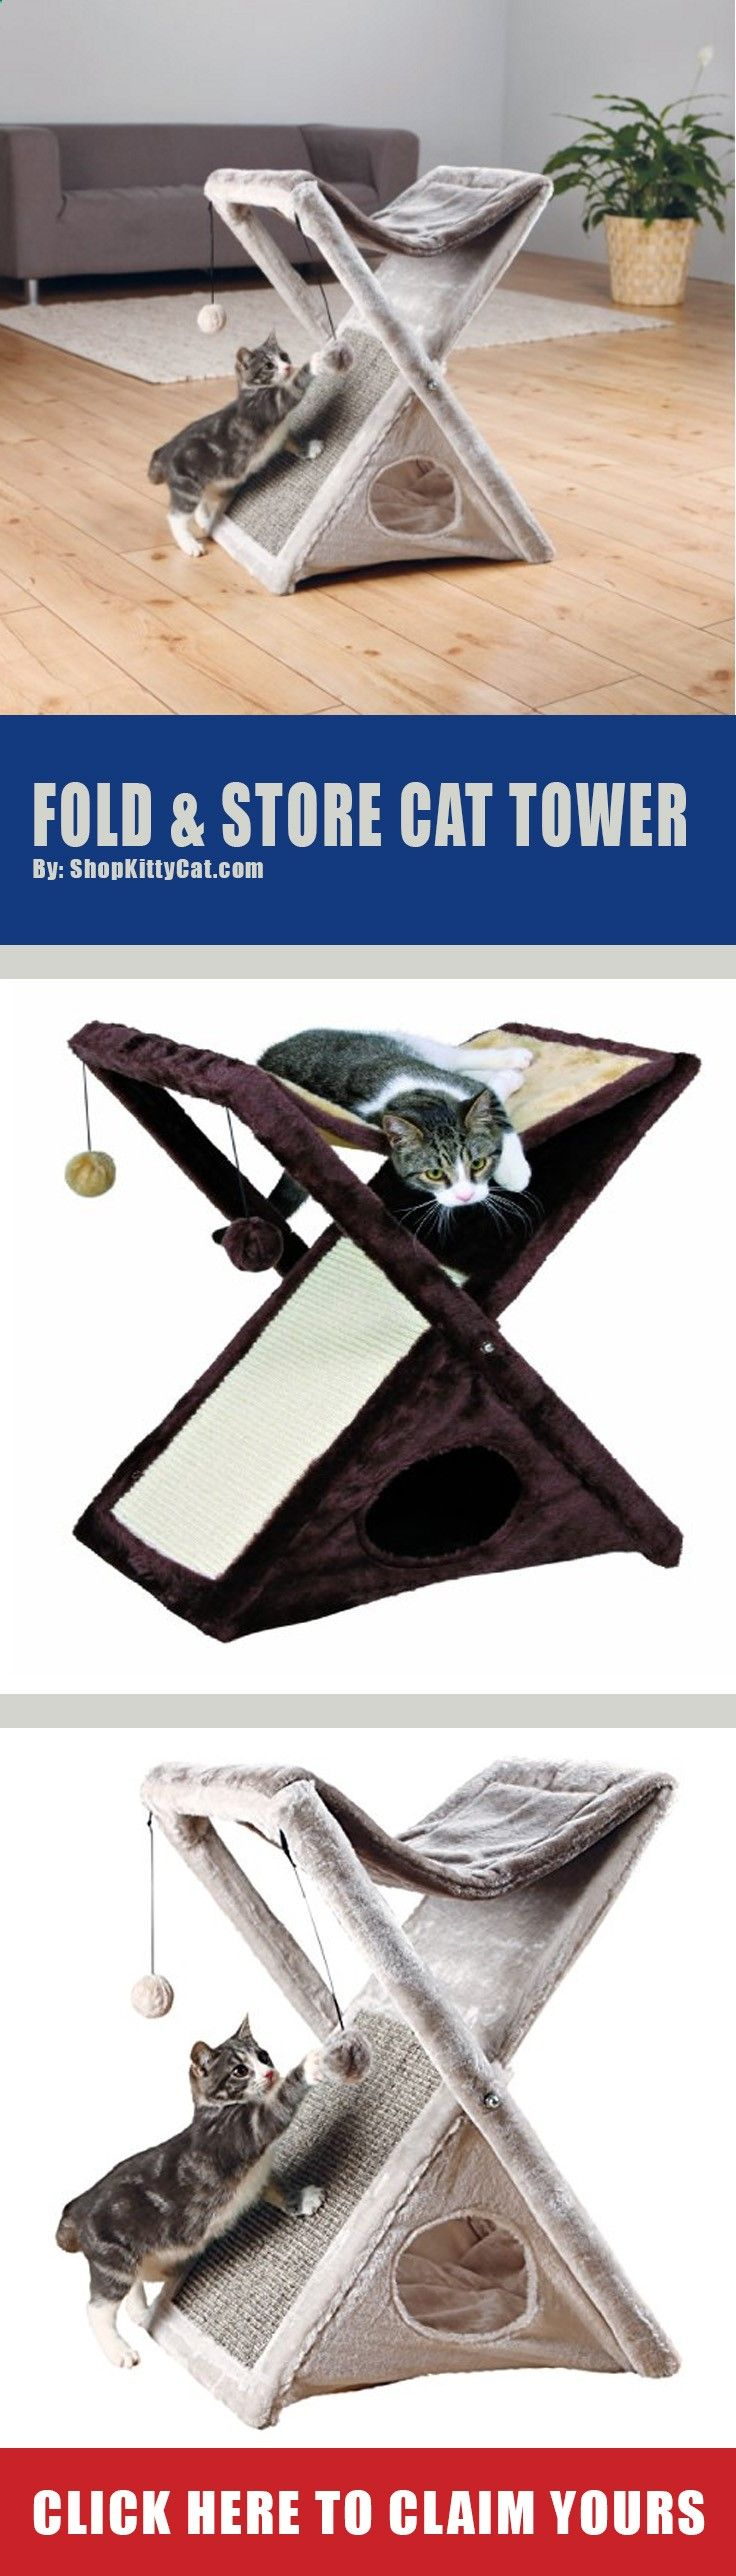 ($37.99-$46.94) Special Price Sale For a LIMITED Time On Our Fold & Store Cat Tower. This Is The Best Price of The Year For This Simple & Easy Kitty Tower. Quit Trying to Make The Perfect Unique Homemade DIY Kittie Tower  & Get This While It's Still On Clearance.